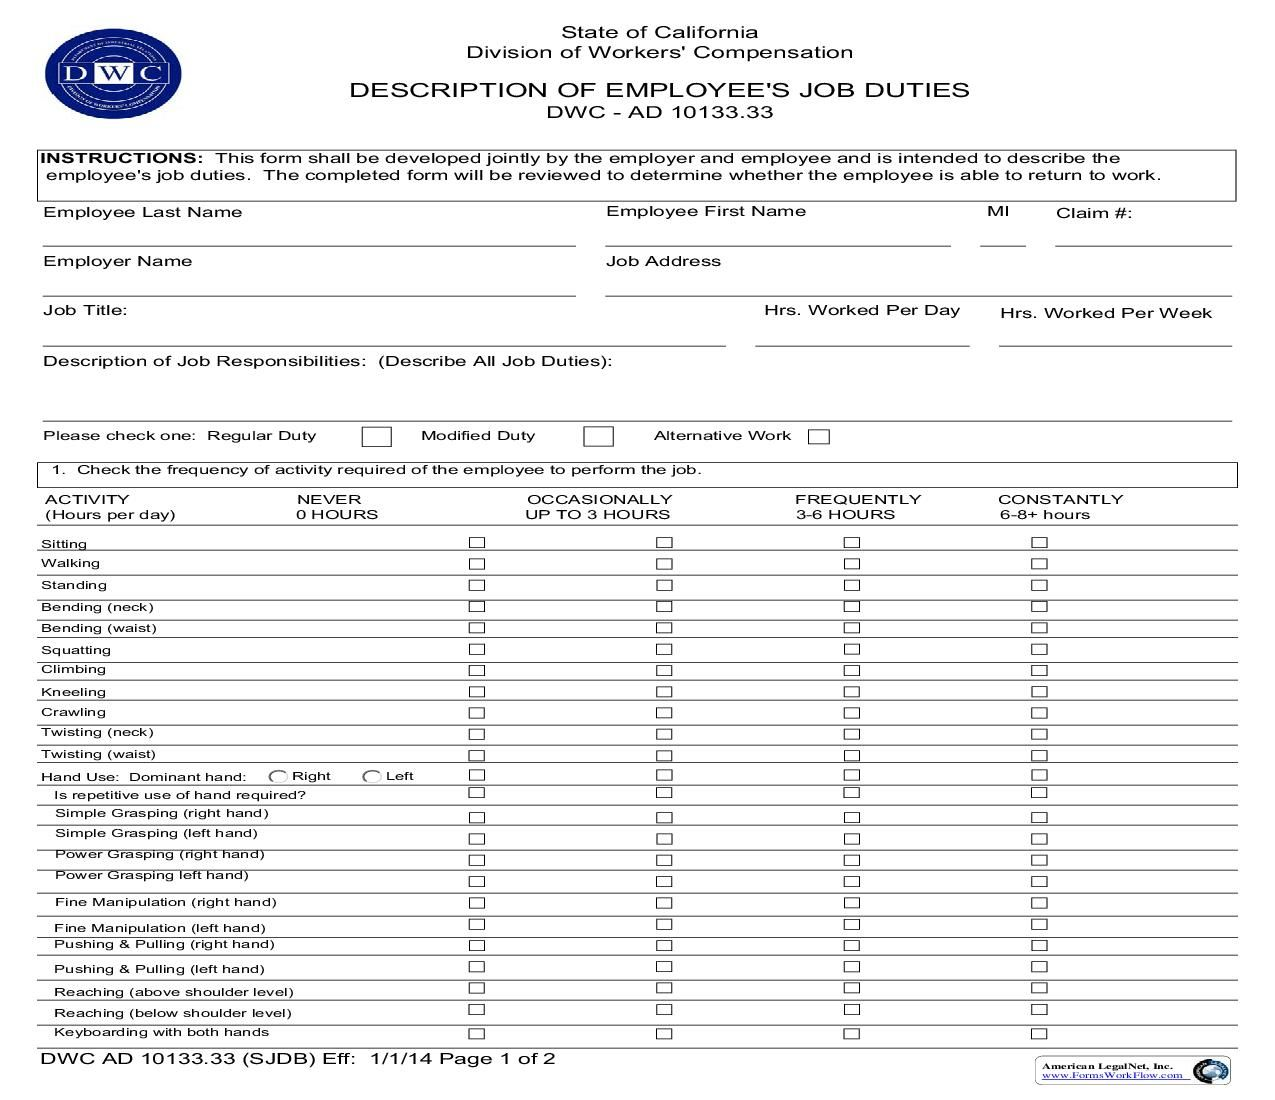 This is a California form that can be used for General